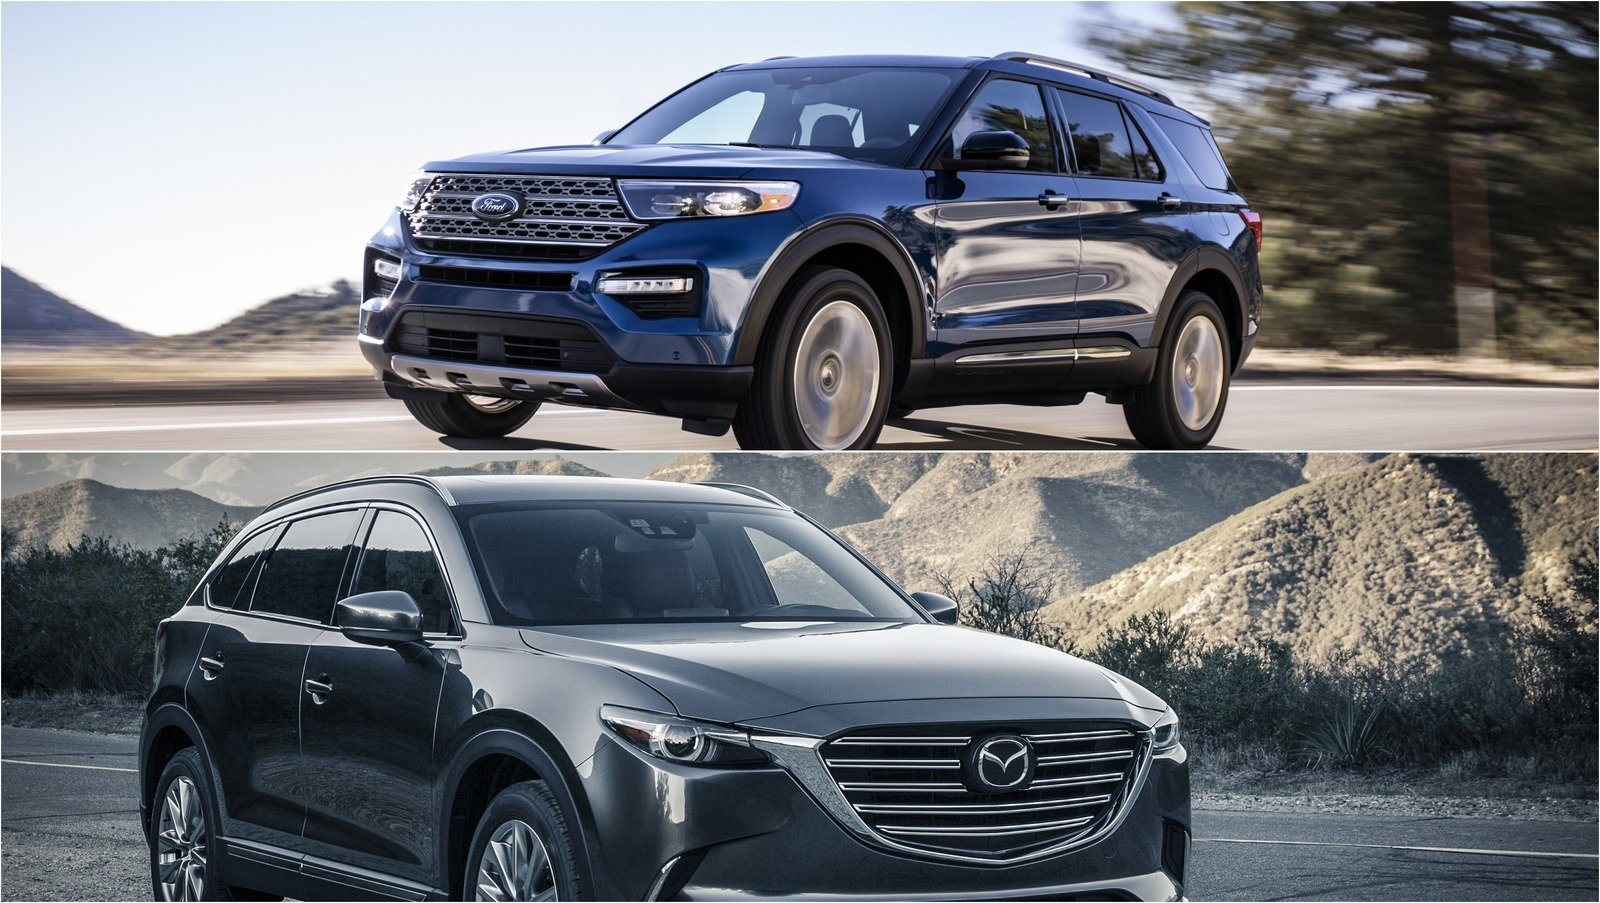 2020 Ford Explorer Vs 2019 Mazda CX-9 Pictures, Photos ...